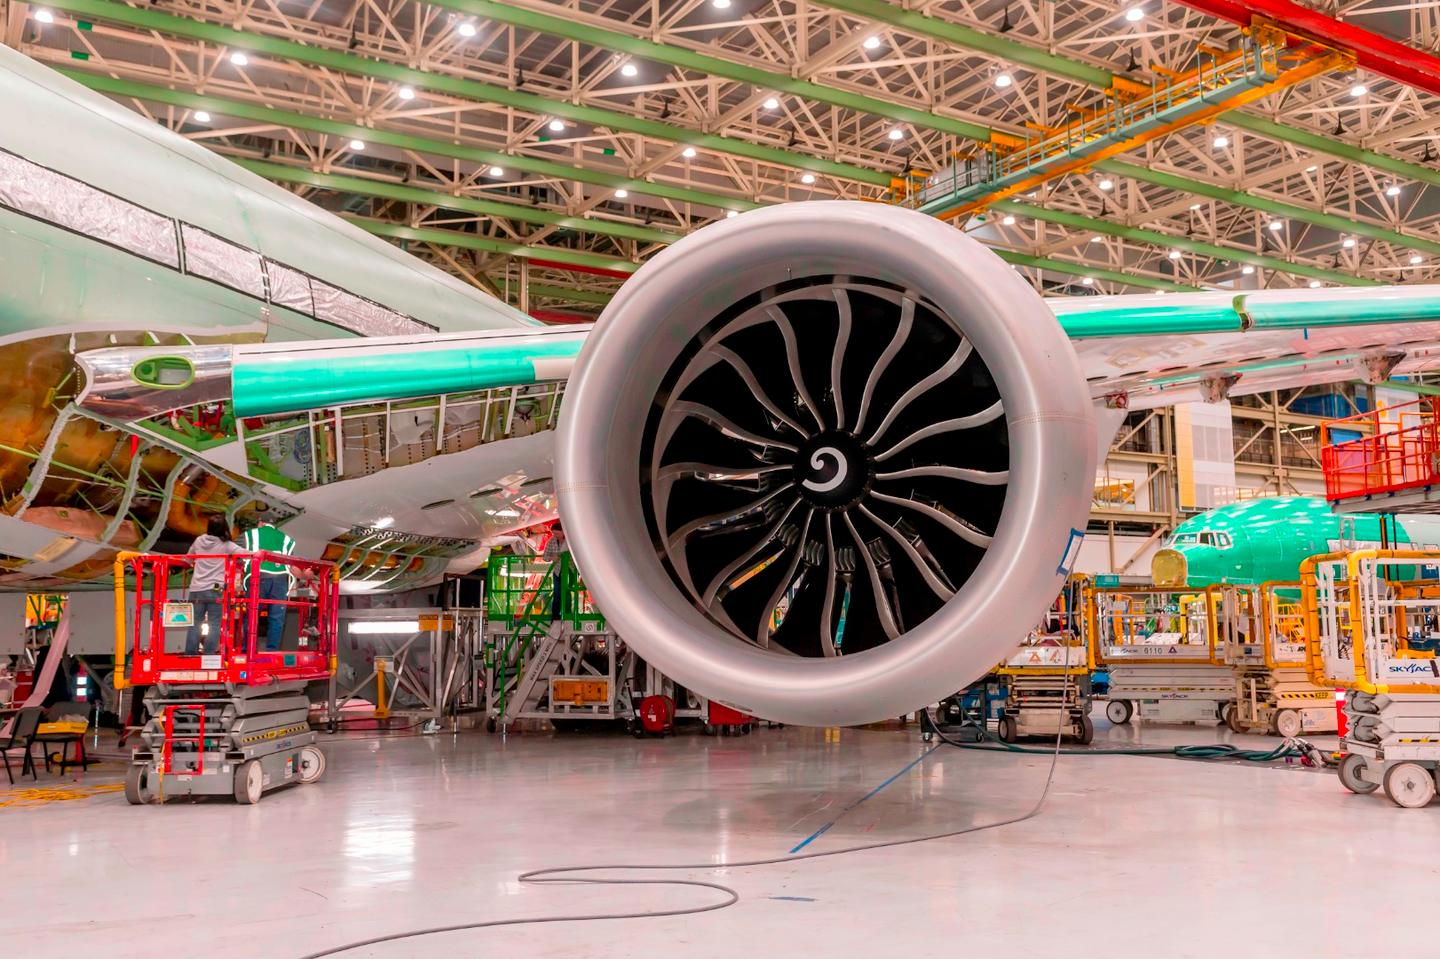 The GE9X is the world's largest fanjet engine